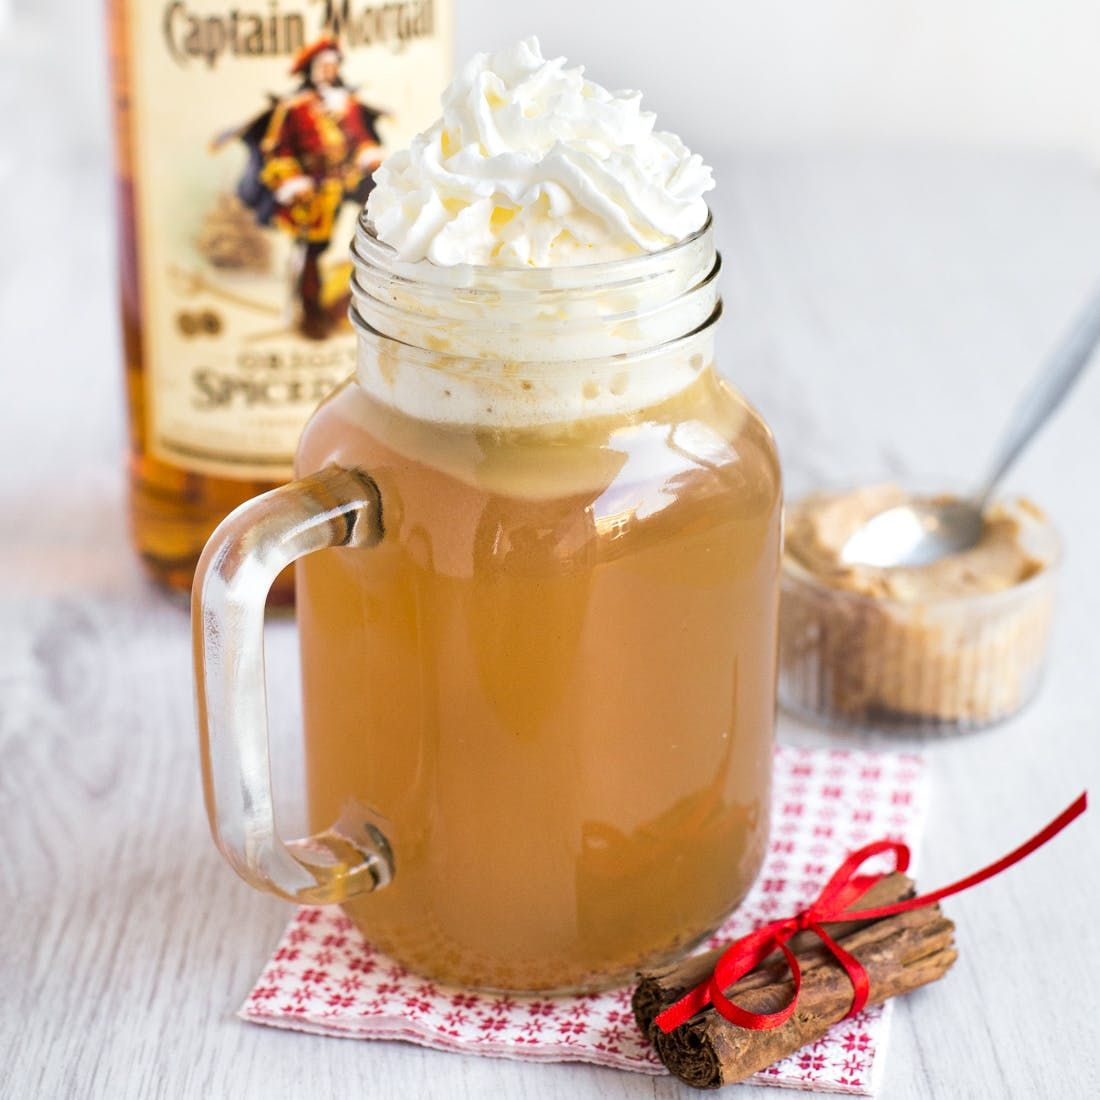 Warm Up Your Winter With Hot Buttered Rum